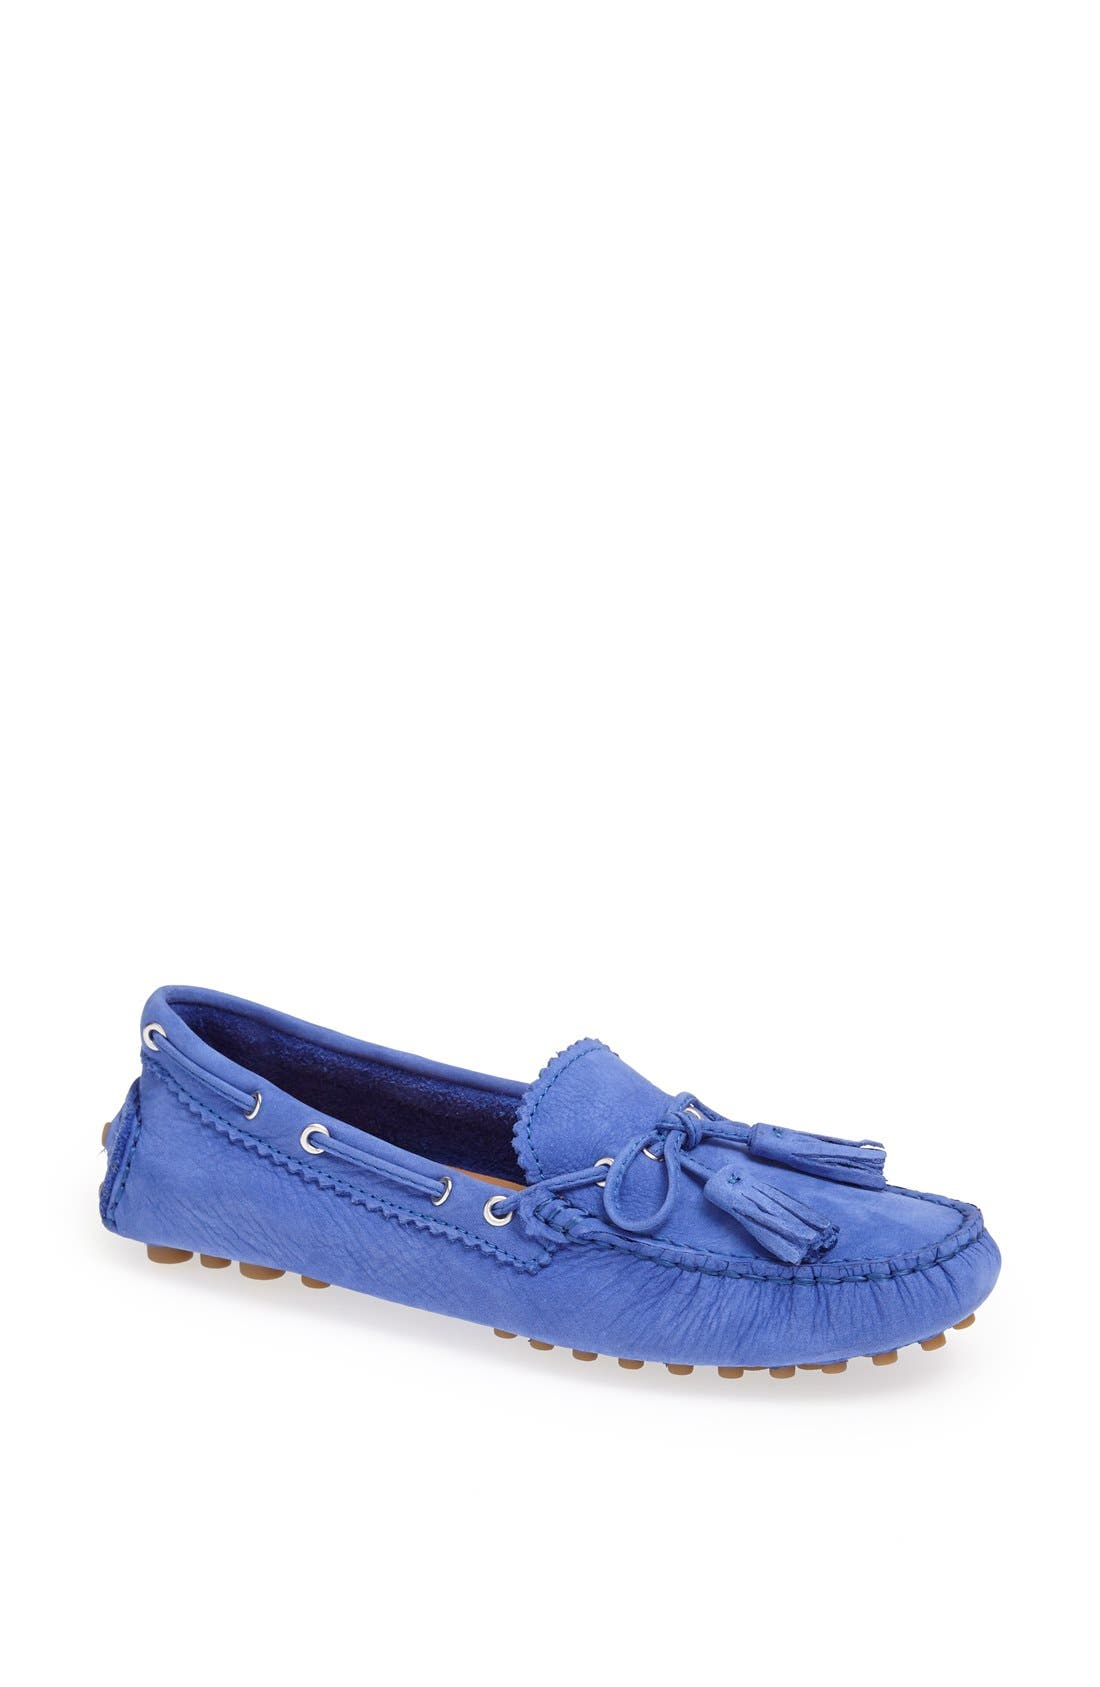 Main Image - COACH 'Nadia' Suede Driving Loafer